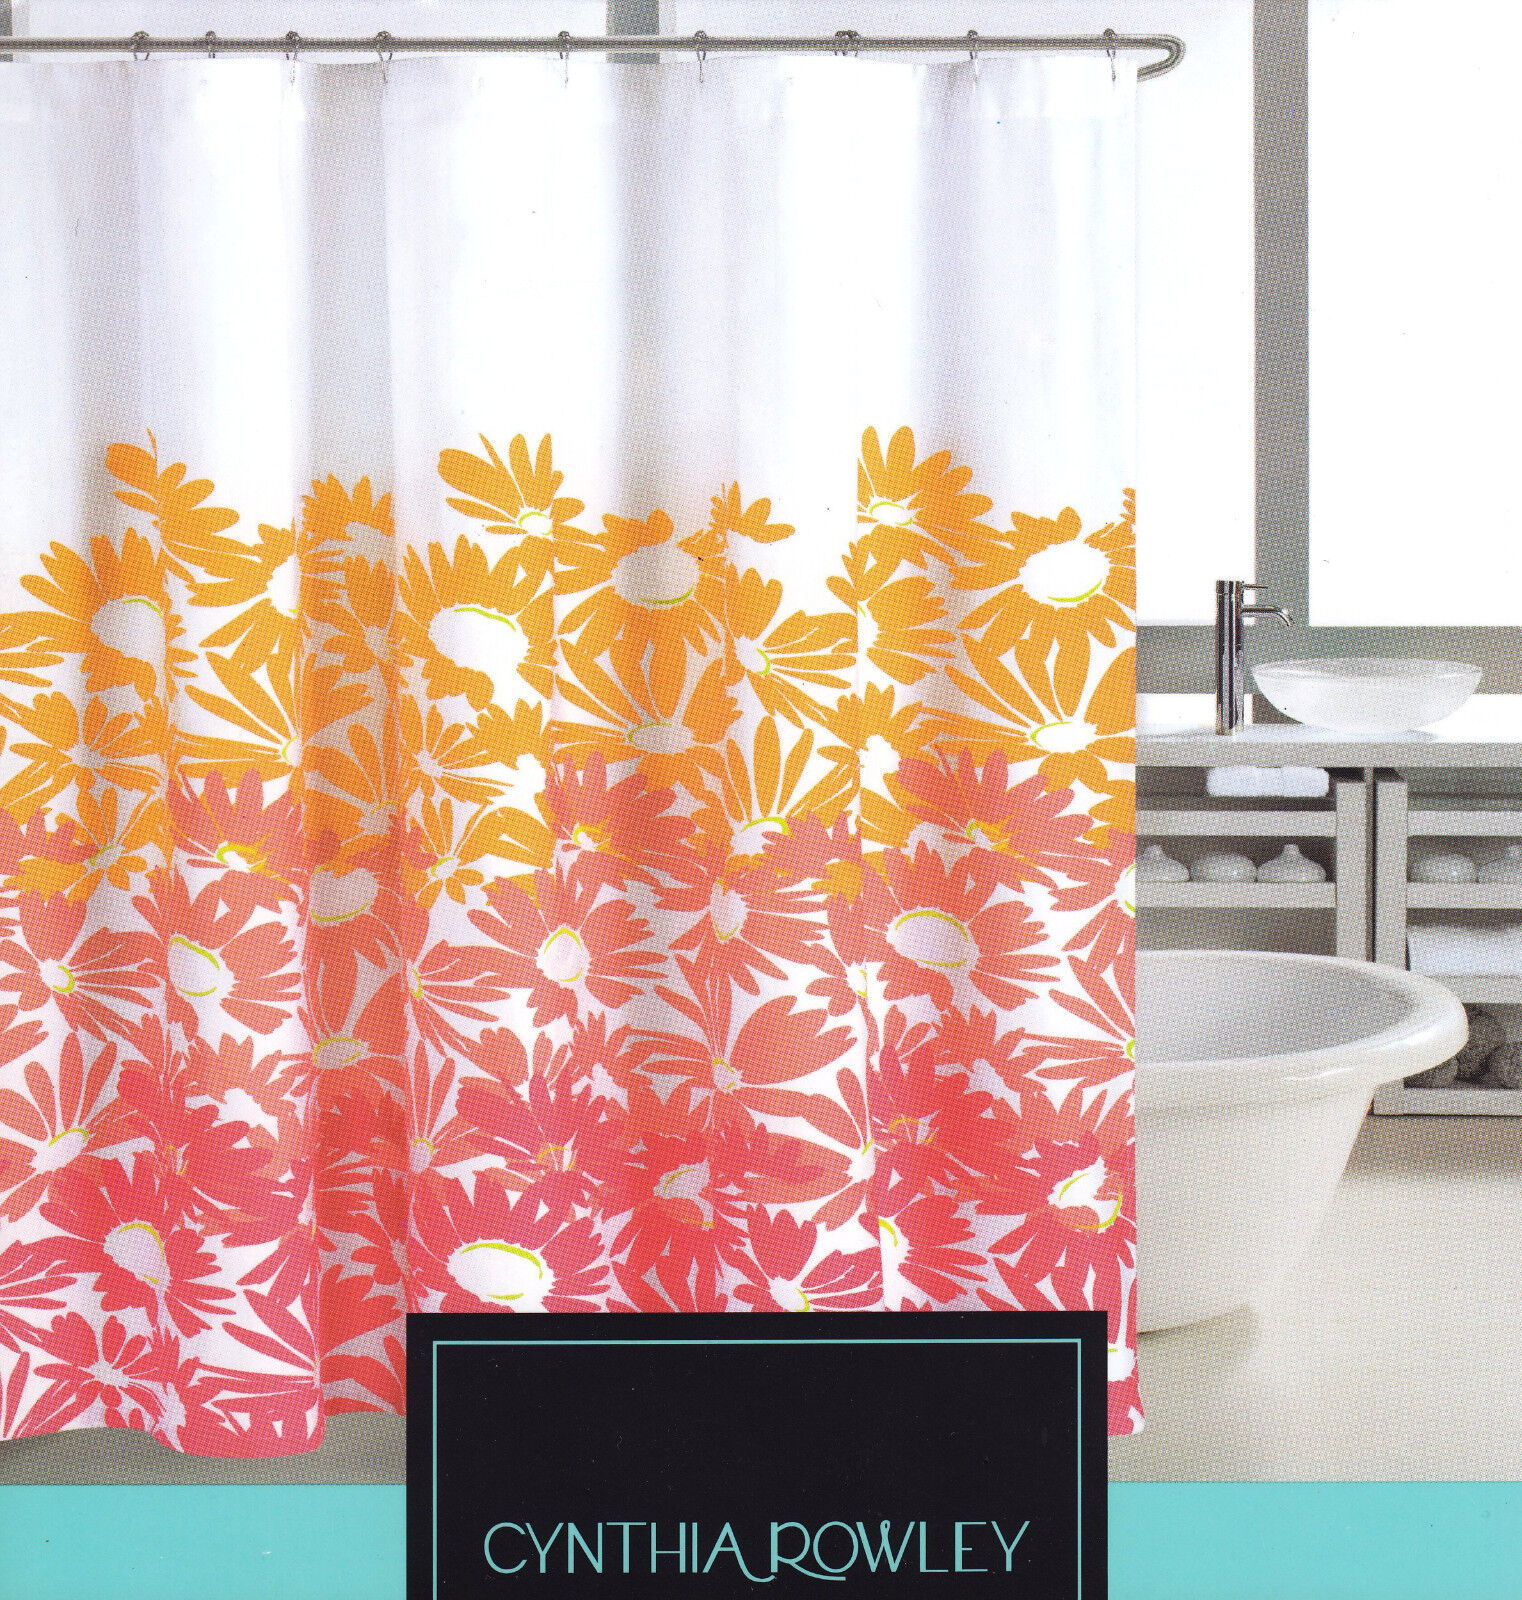 Cynthia Rowley Cotton Blend Fabric Shower Curtain Sunny Floral Coral Melon White For Sale Online